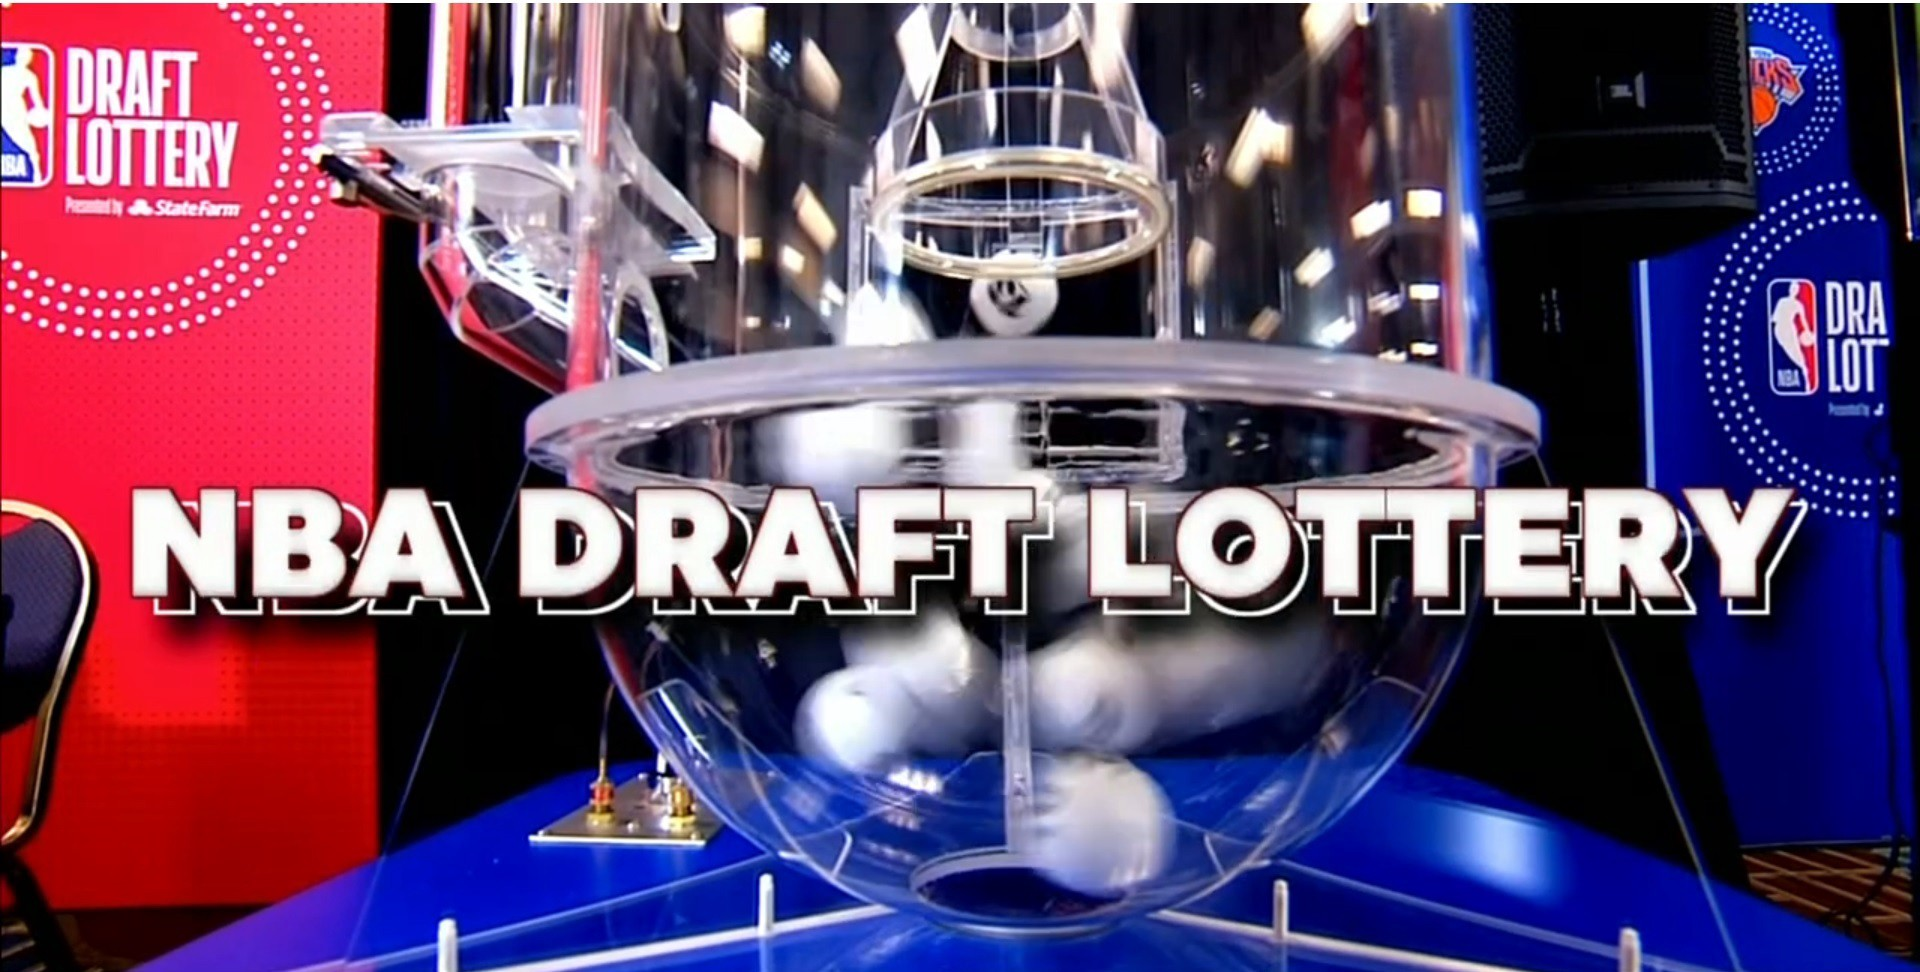 The 2021 NBA Draft order is set, and the Detroit Pistons won the #1 pick. How will the lottery play out now that we know the order? It's mock draft time.